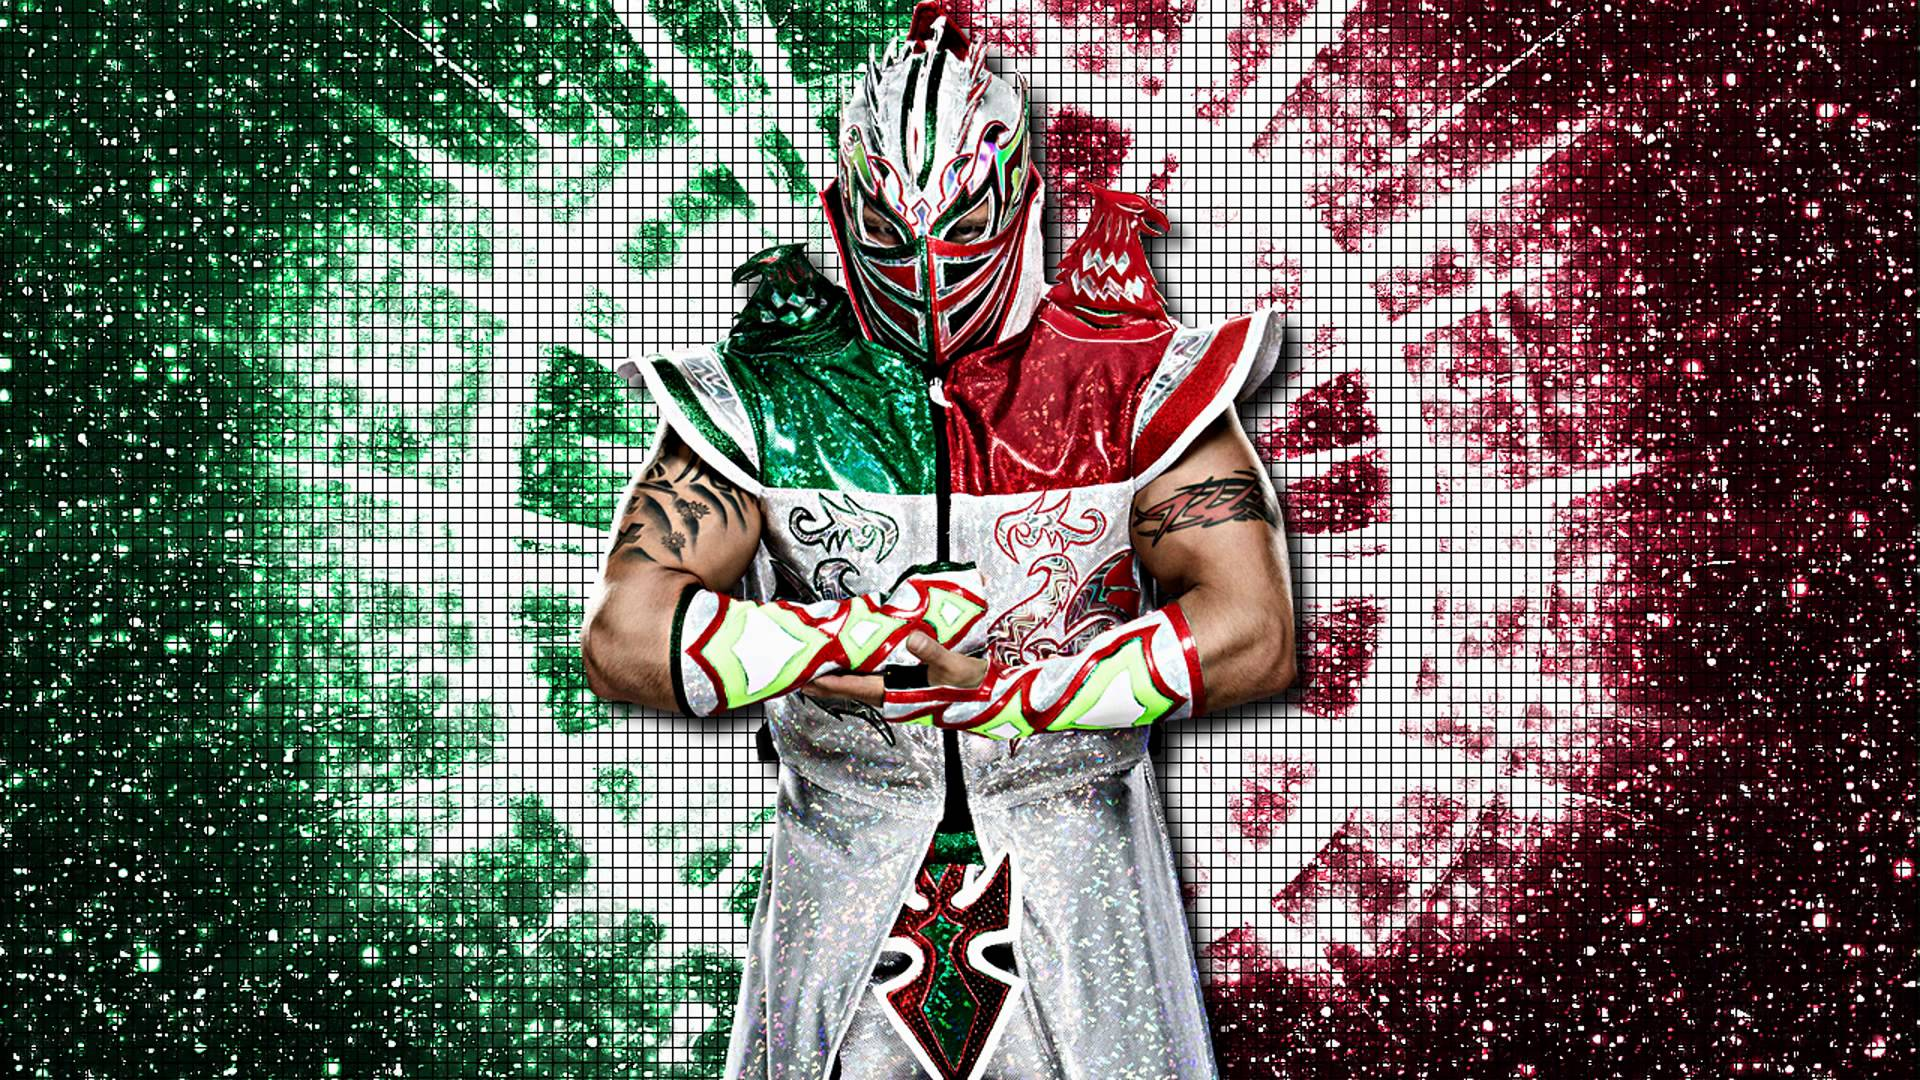 Lucha Libre Rey Misterio Rey Mysterio 2017 Full Hd Wallpapers Wallpaper Cave